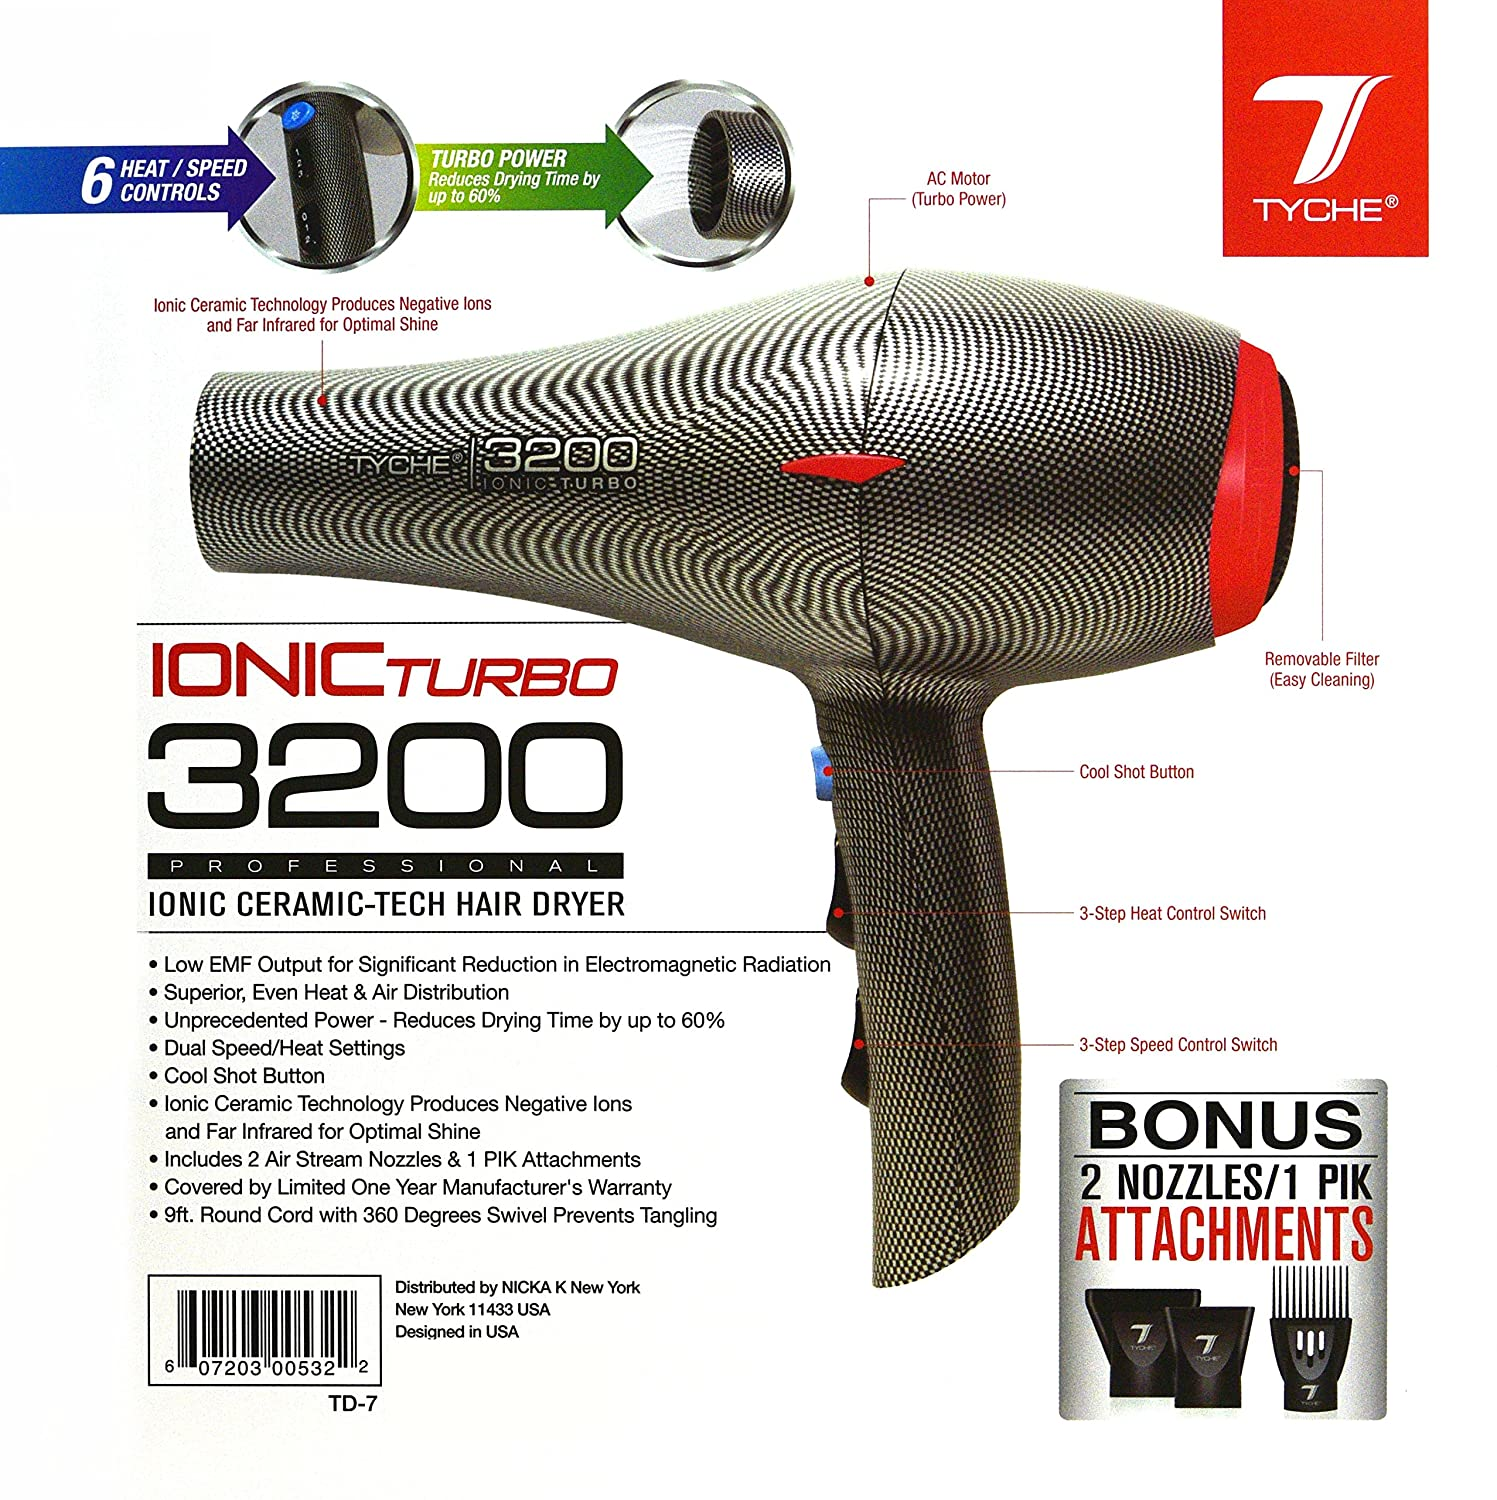 Amazon.com: Tyche Turbo 3200 Professional Ionic Ceramic Tech Hair Dryer (1 Year Warranty) Dries Hair Fast, Negative Ions, Infrared, Hair Shine, ...